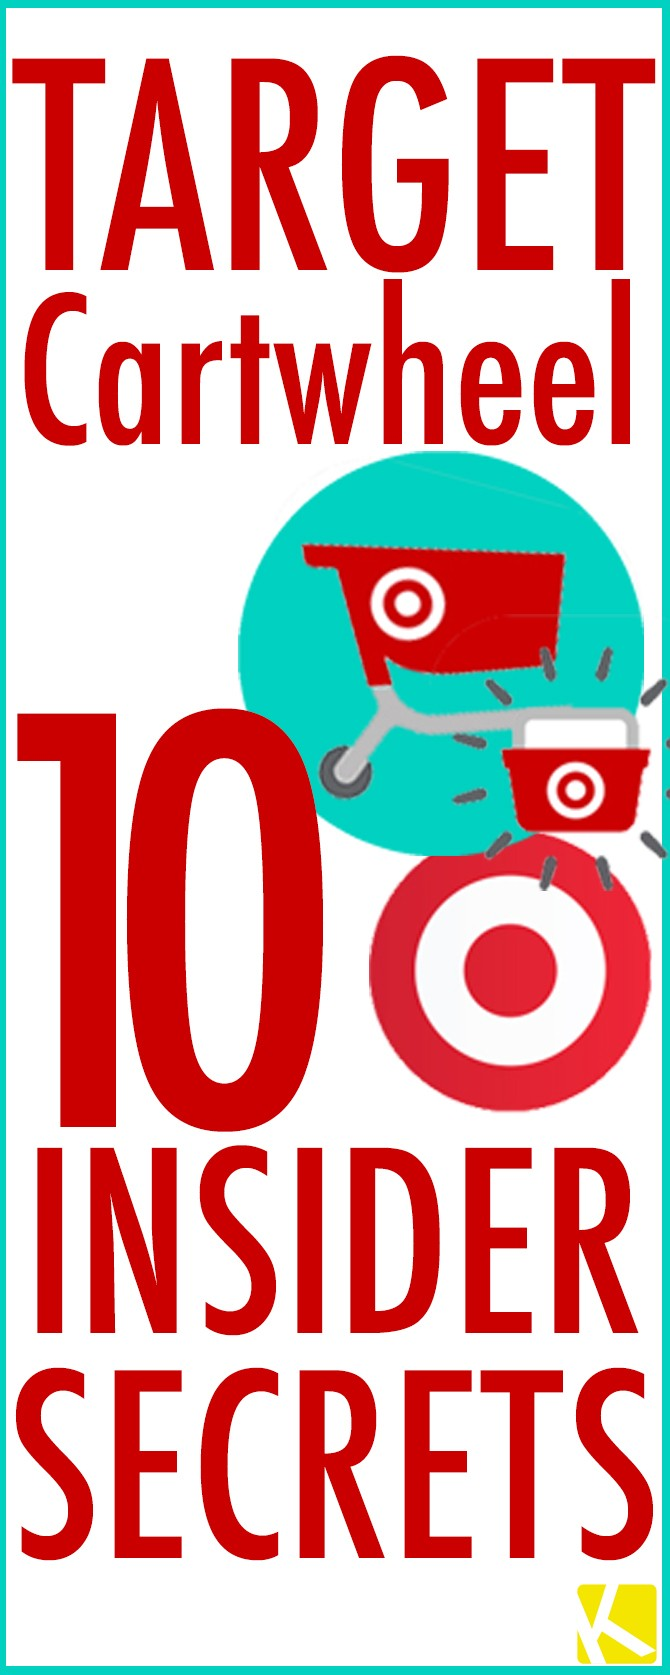 Target Cartwheel: 10 Insider Secrets You Must Know